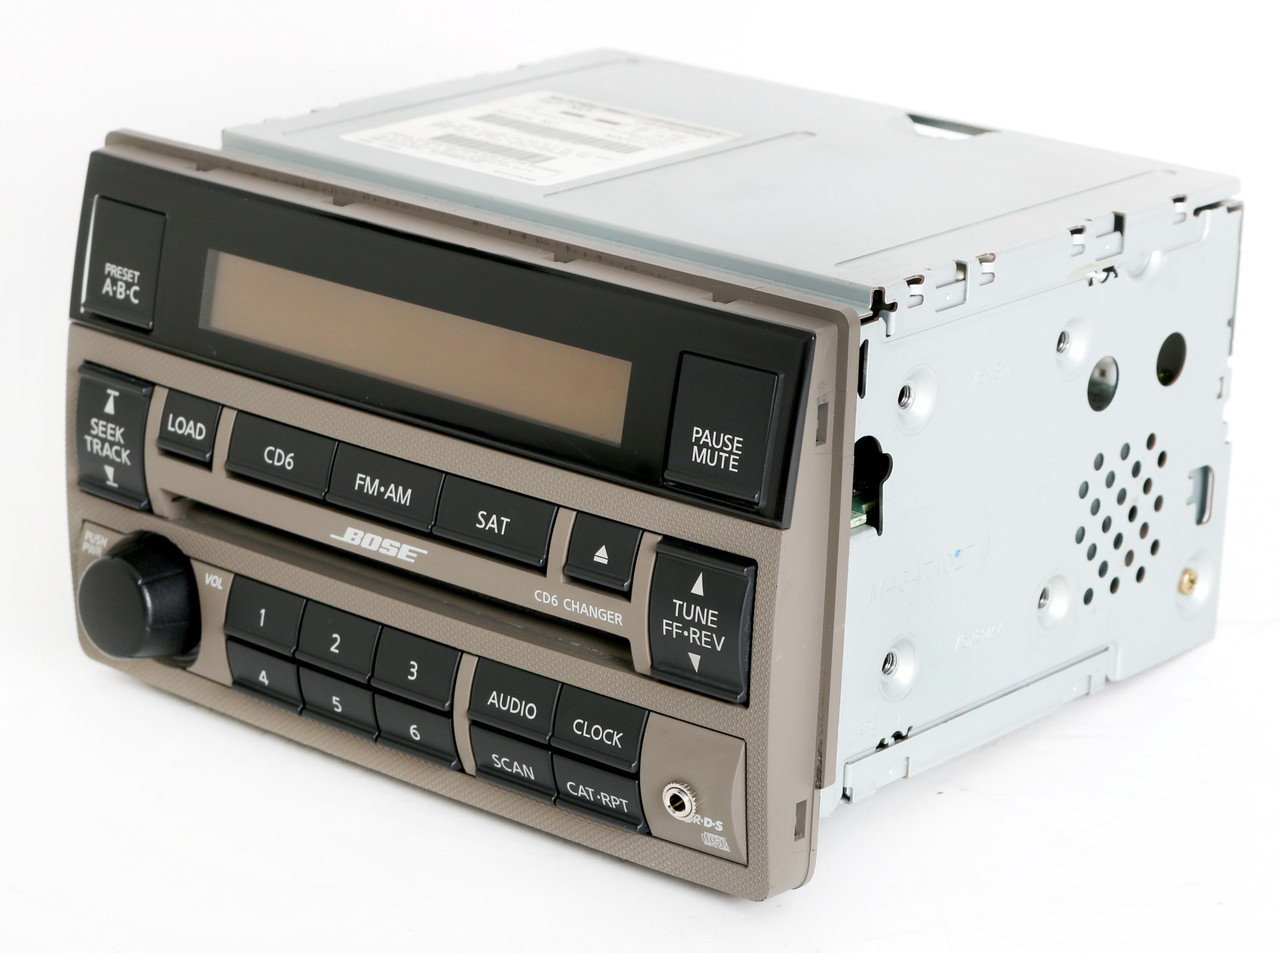 2005-2006 Nissan Altima Tan Bose Radio Am Fm 6 Disc Cd Player W Auxiliary Input